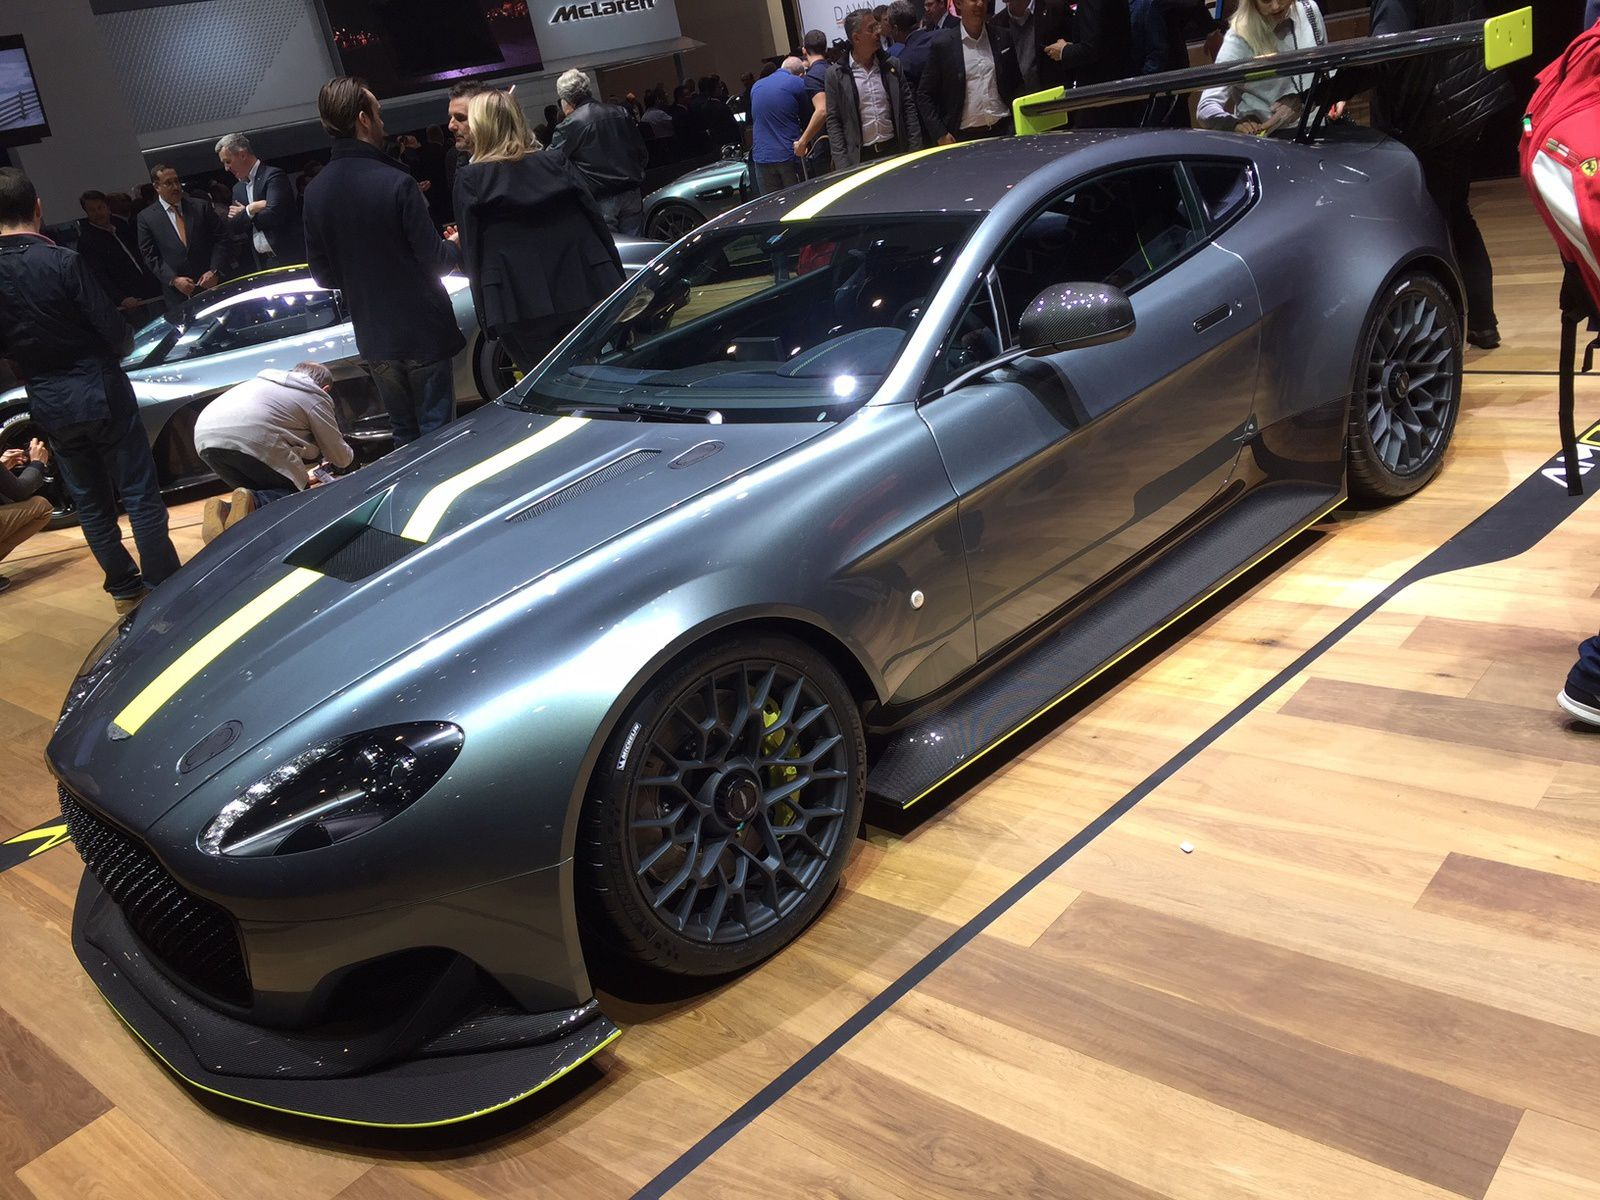 Salon automobile de gen ve 2017 amoc france for Salon automobile de geneve 2017